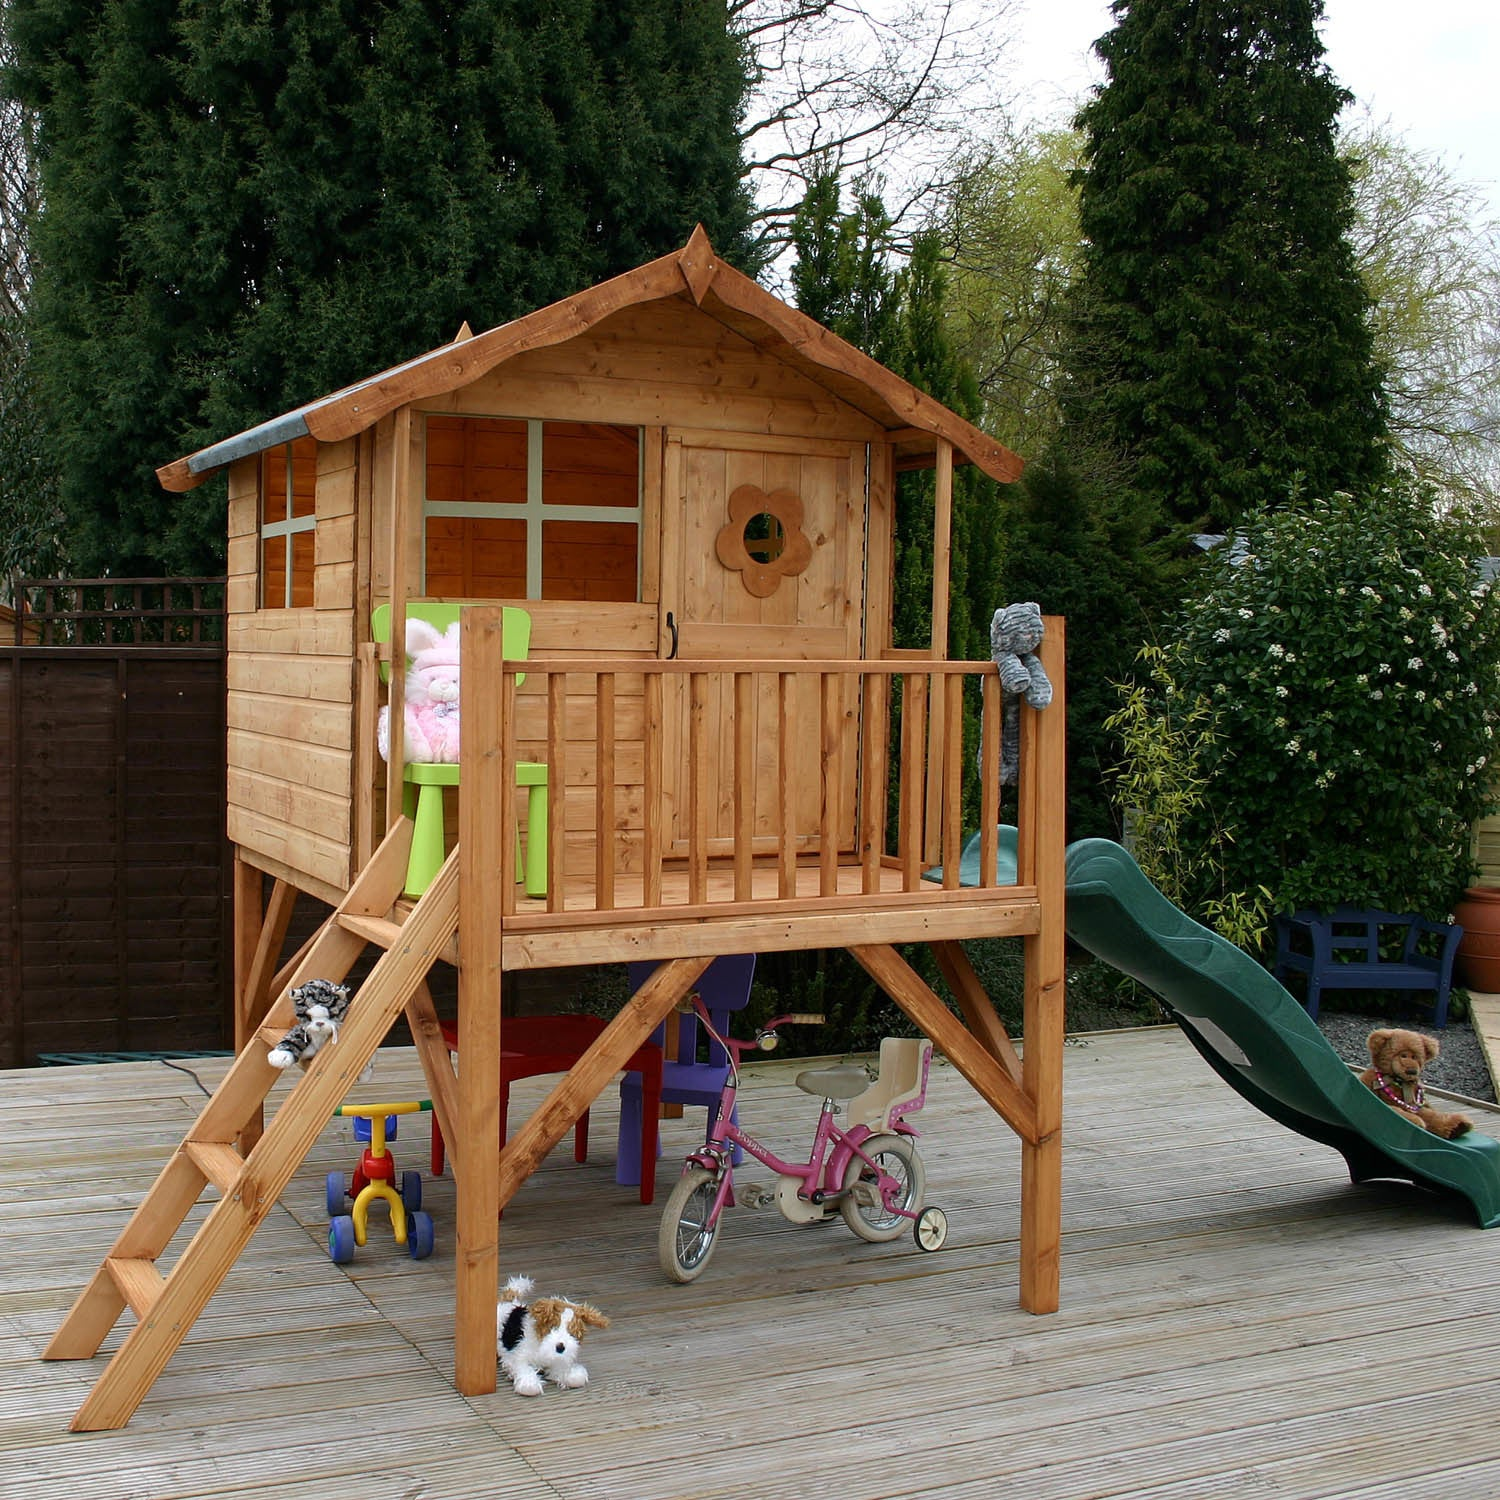 Do It Yourself Home Design: 5' X 5' Wooden 'Tulip' Playhouse (Tower With Slide